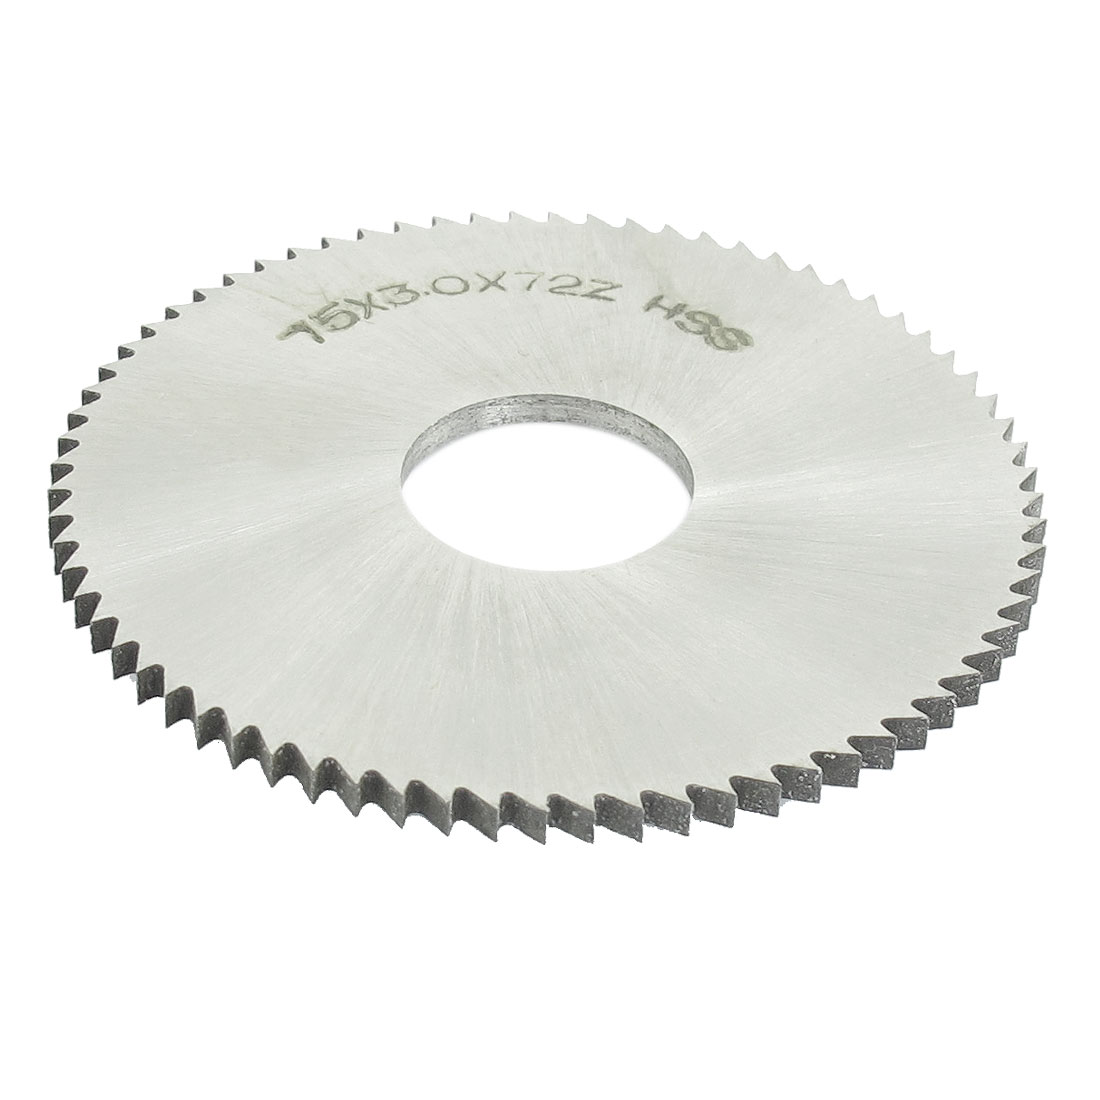 HSS 75mm Diameter 3mm Thickness 72 Teeth Circular Milling Cutter Saw